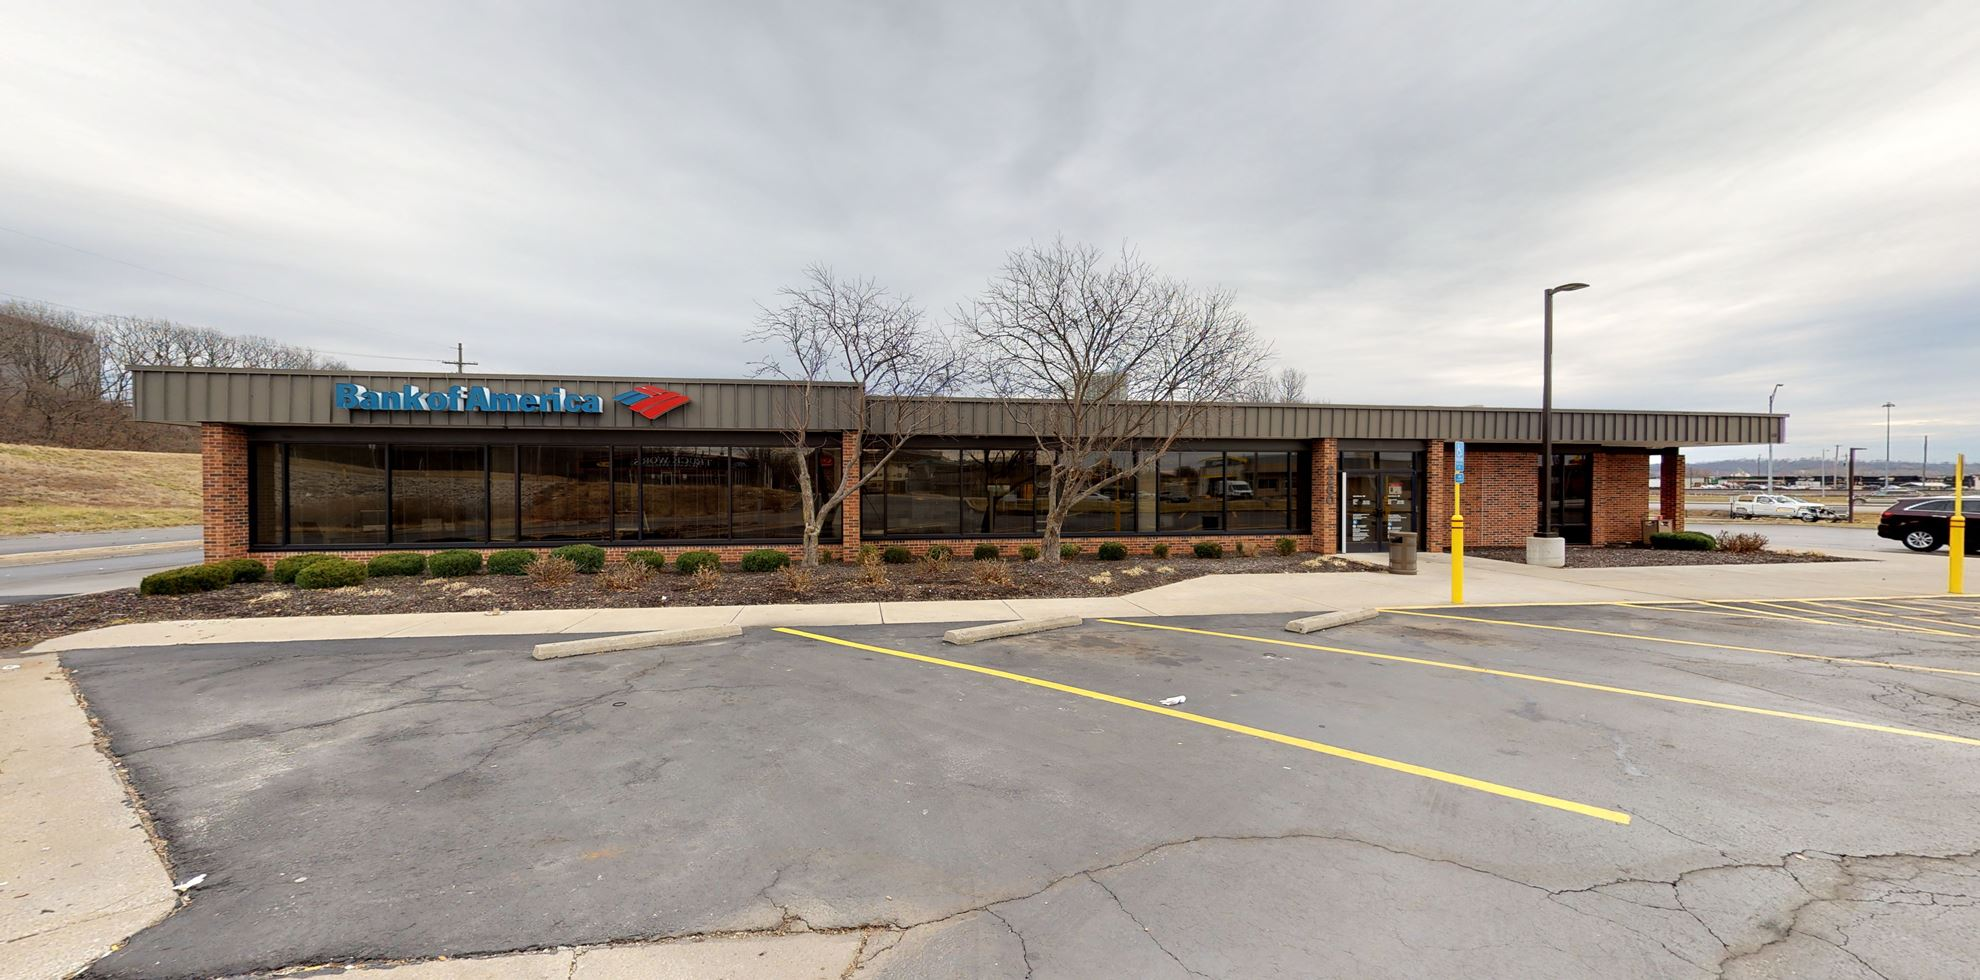 Bank of America financial center with drive-thru ATM   2260 Armour Rd, North Kansas City, MO 64116